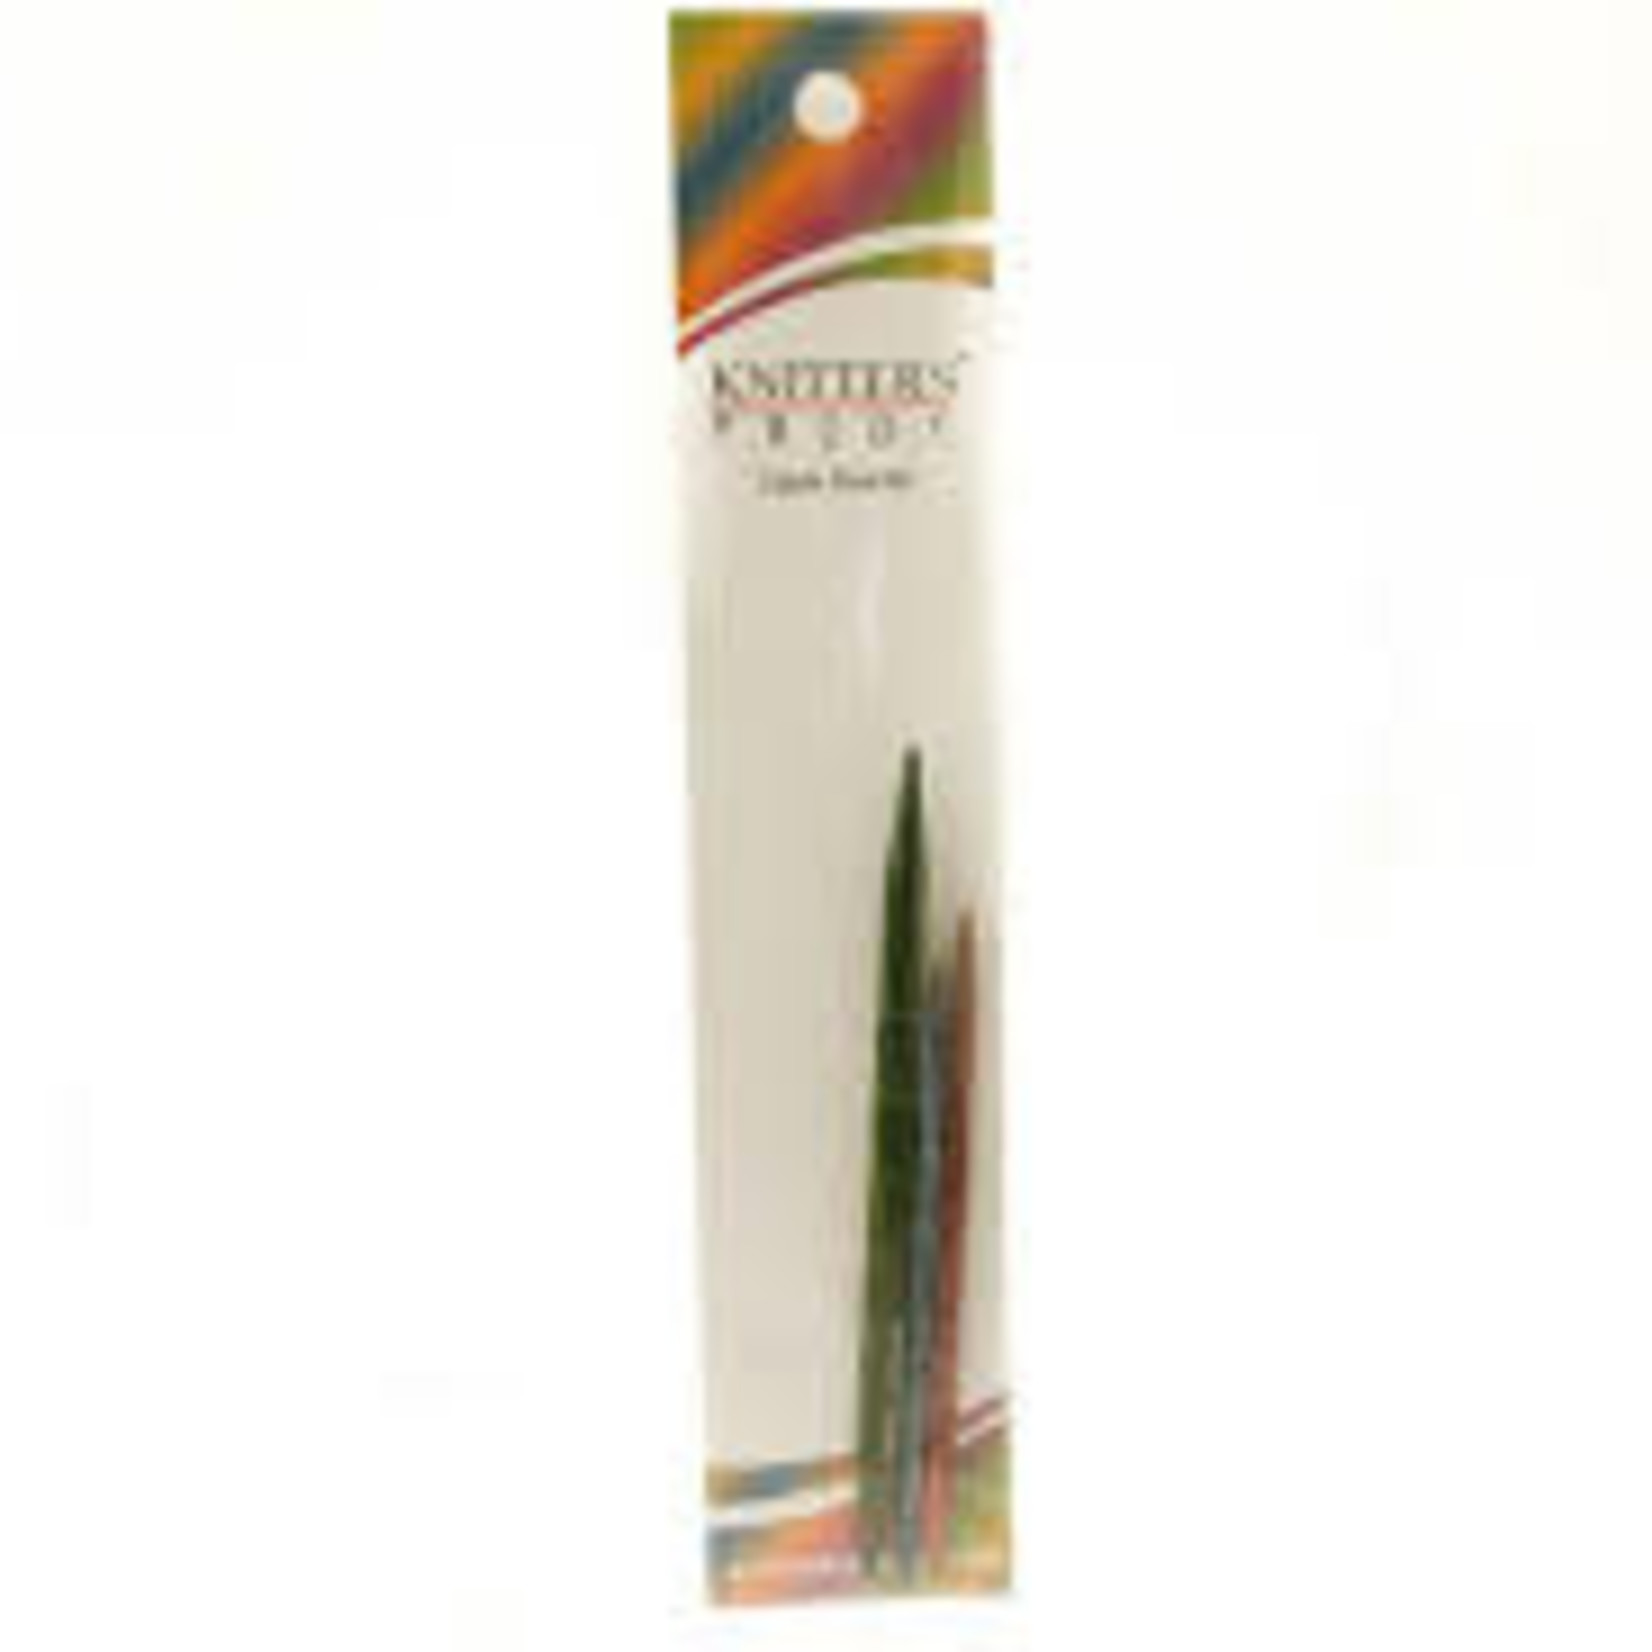 Knitter's Pride Dreamz Cable Needle Set (8111)